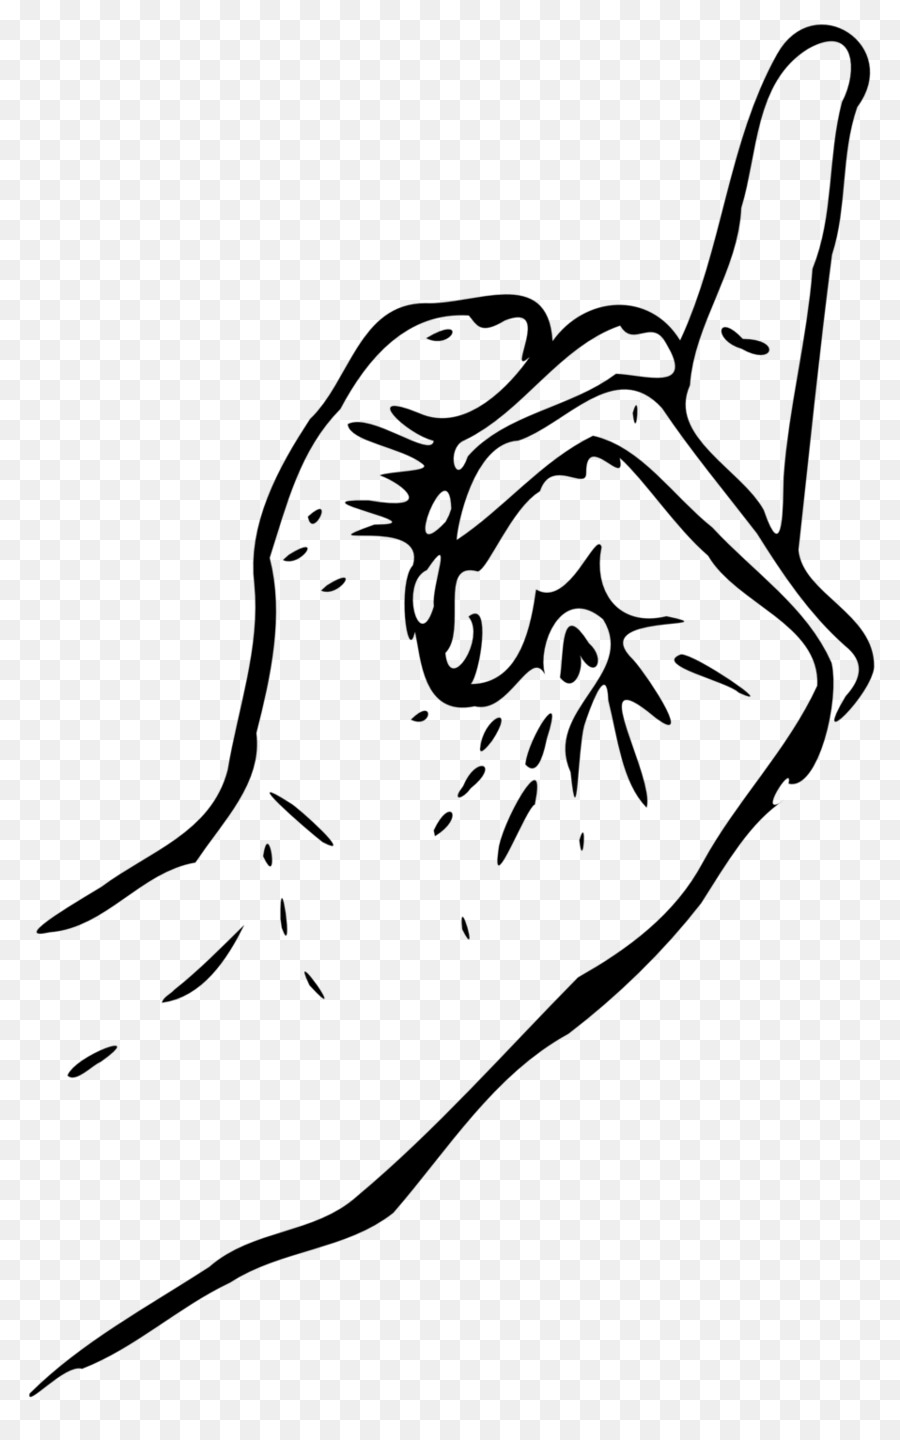 900x1440 Drawing The Finger Middle Finger Clip Art